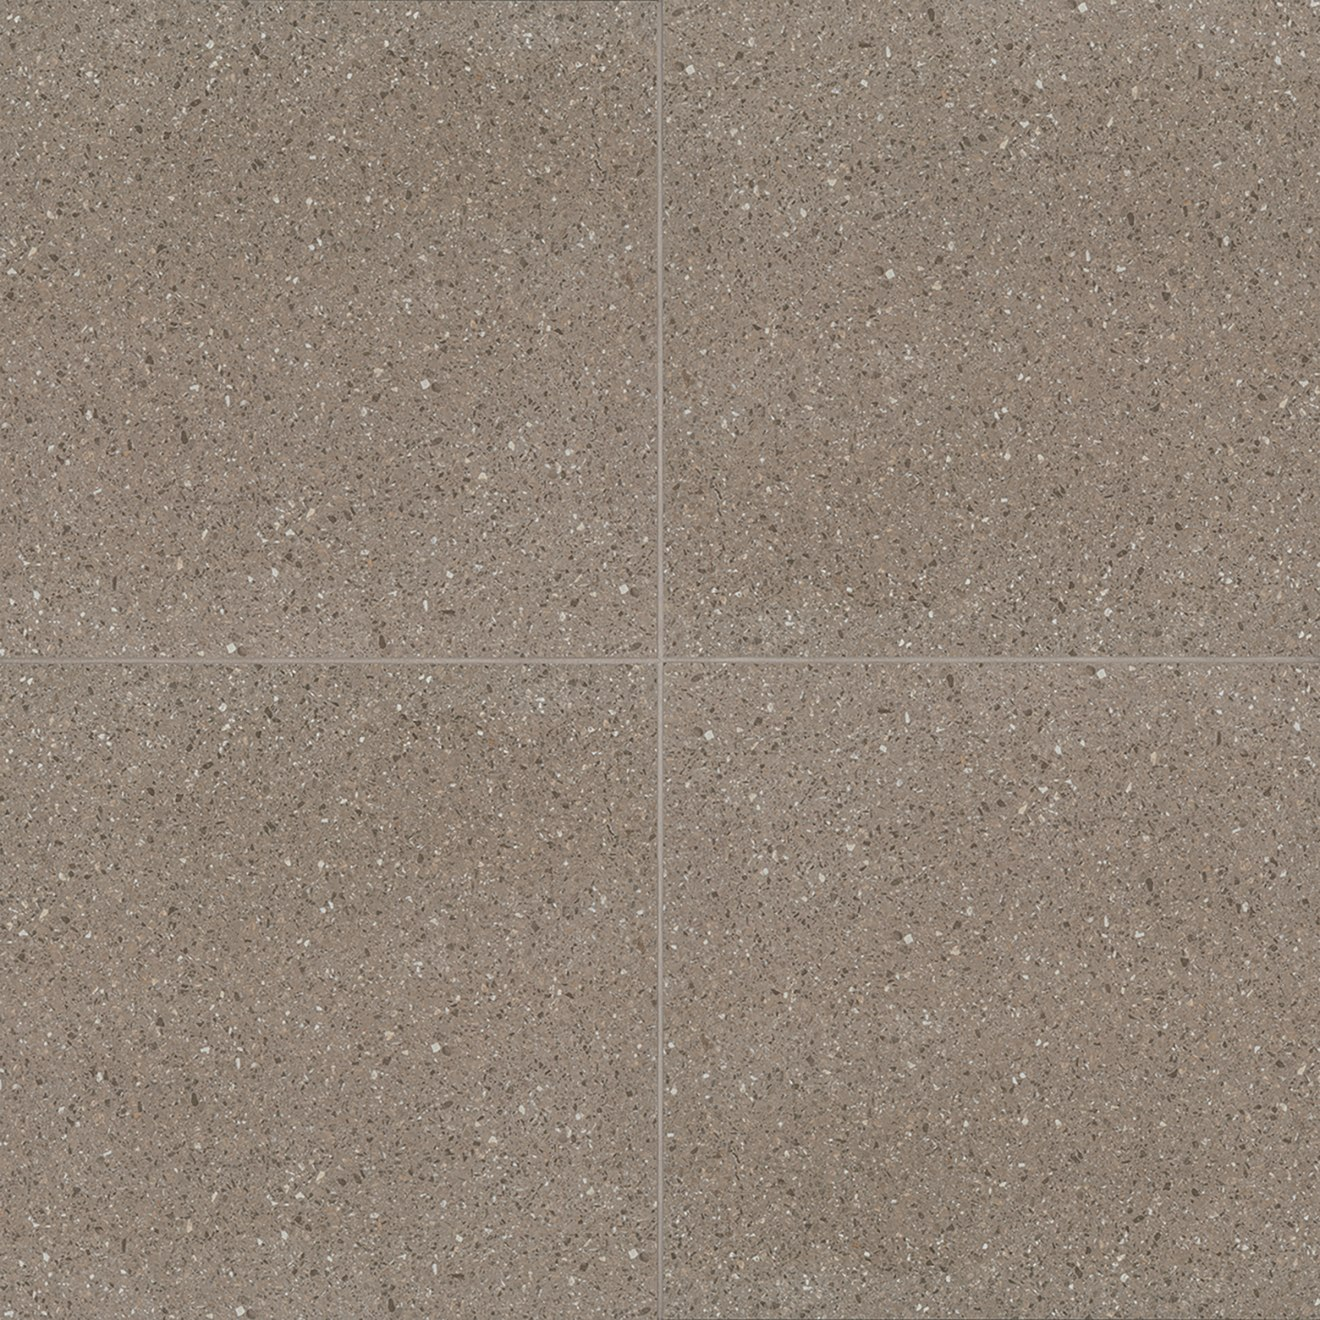 Terrazzo 10 X 10 Floor Wall Tile In Medium Gray